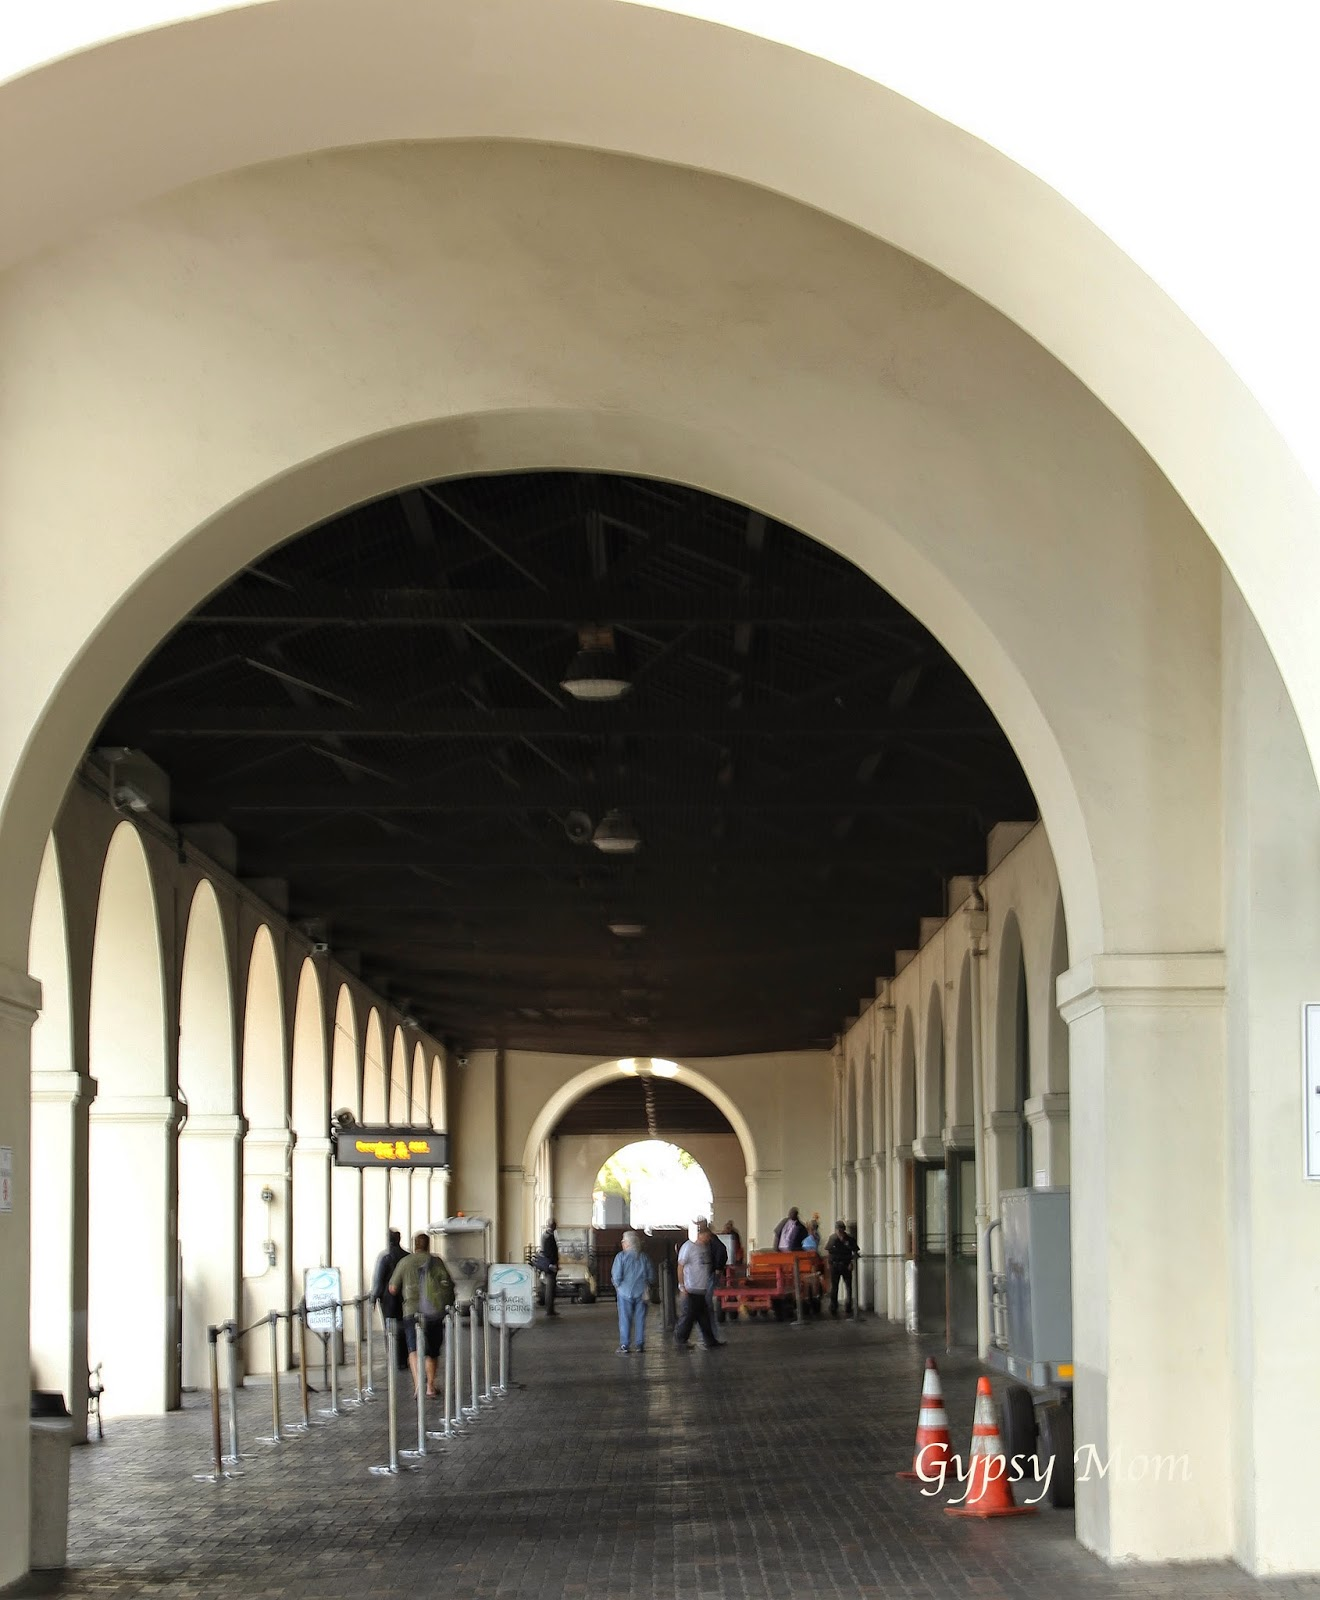 Passageway for passengers at San Diego Union Station